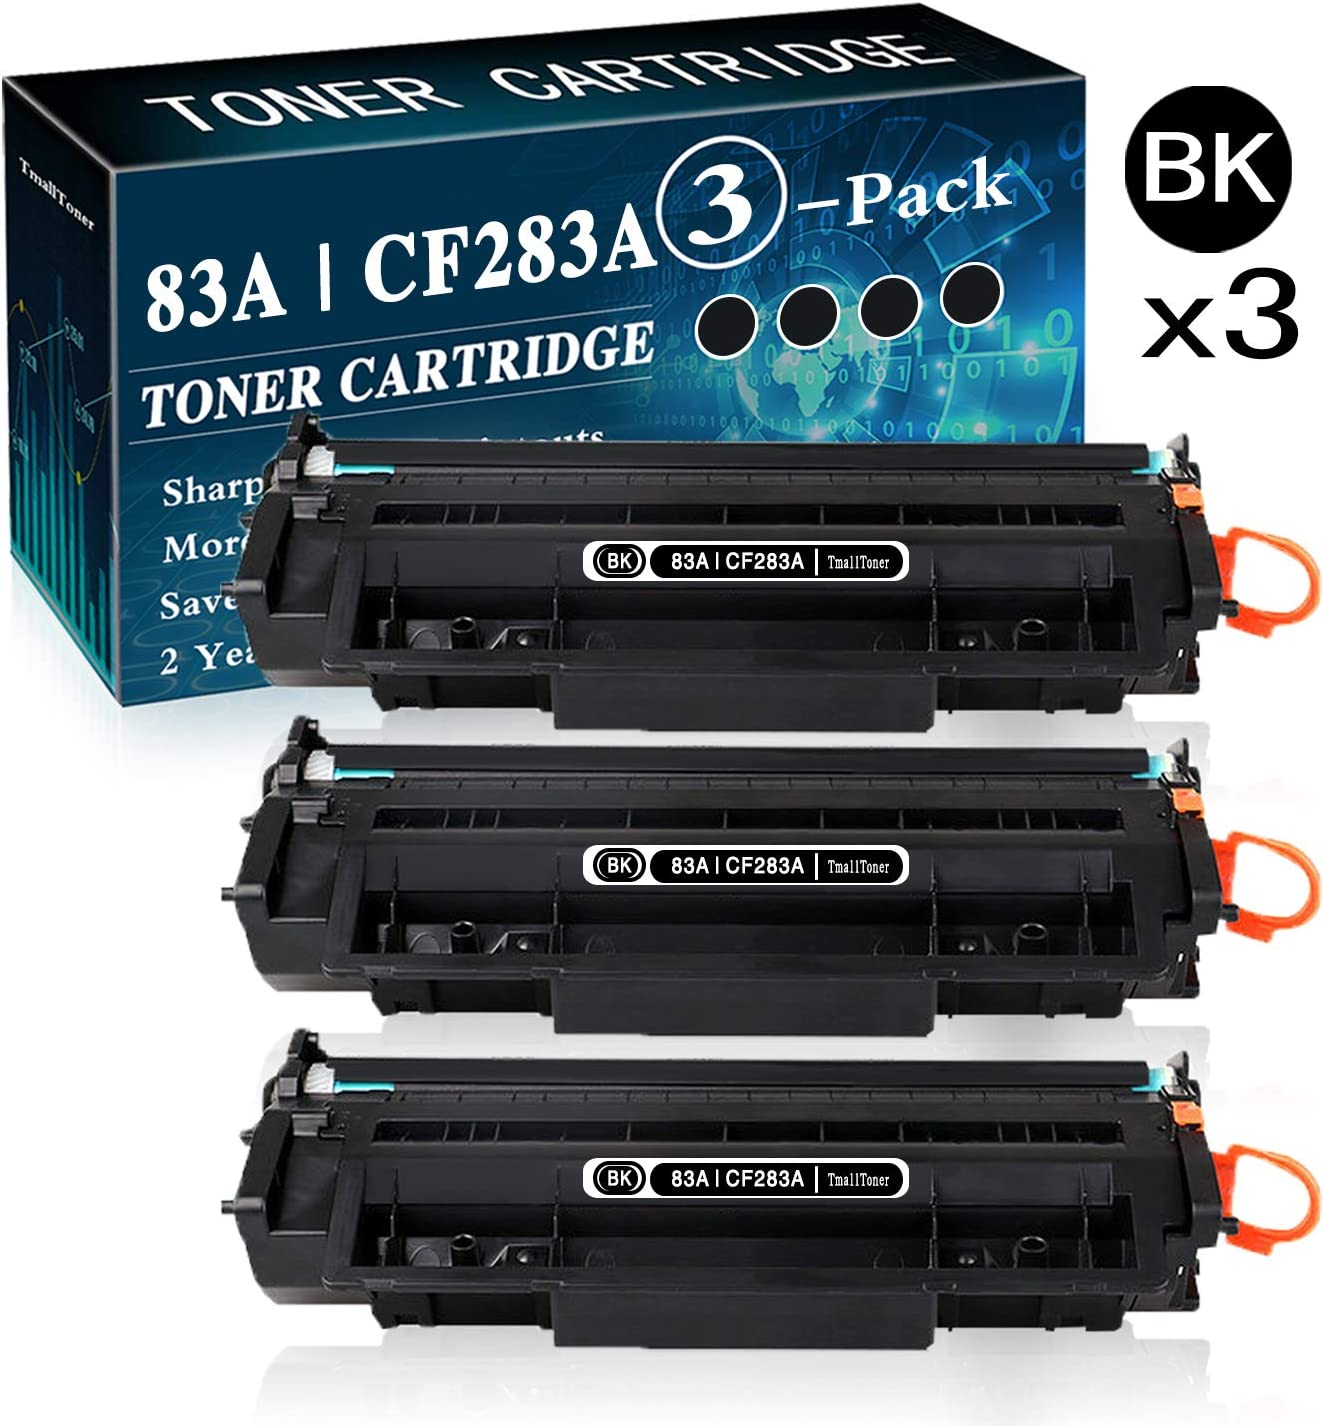 3-Pack Black 83A | CF283A Toner Cartridge Replacement for HP Laserjet M201n M201dw MFP M225dn MFP M225dw MFP M125a PMFP M125nw MFP M126a Printer,by TmallTone